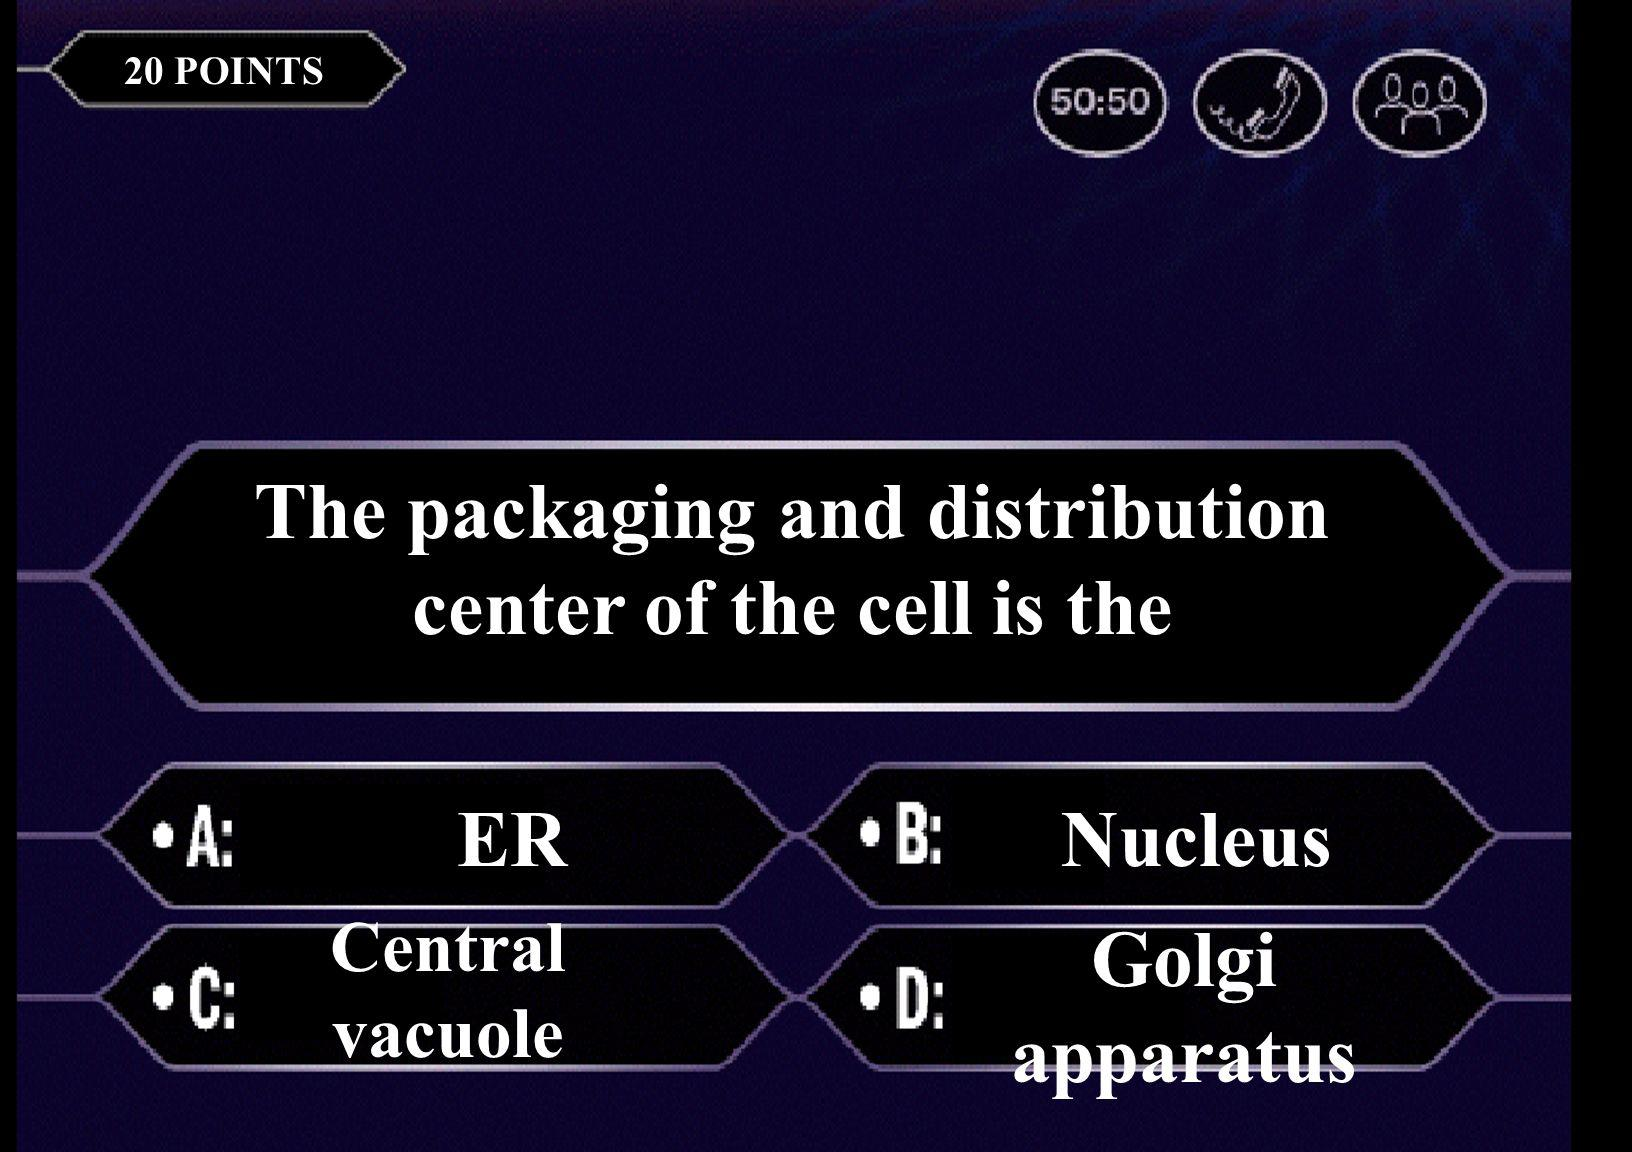 The basic unit of life is a(n) cell airtissue 20 POINTS The packaging and distribution center of the cell is the ERNucleus Central vacuole Golgi apparatus